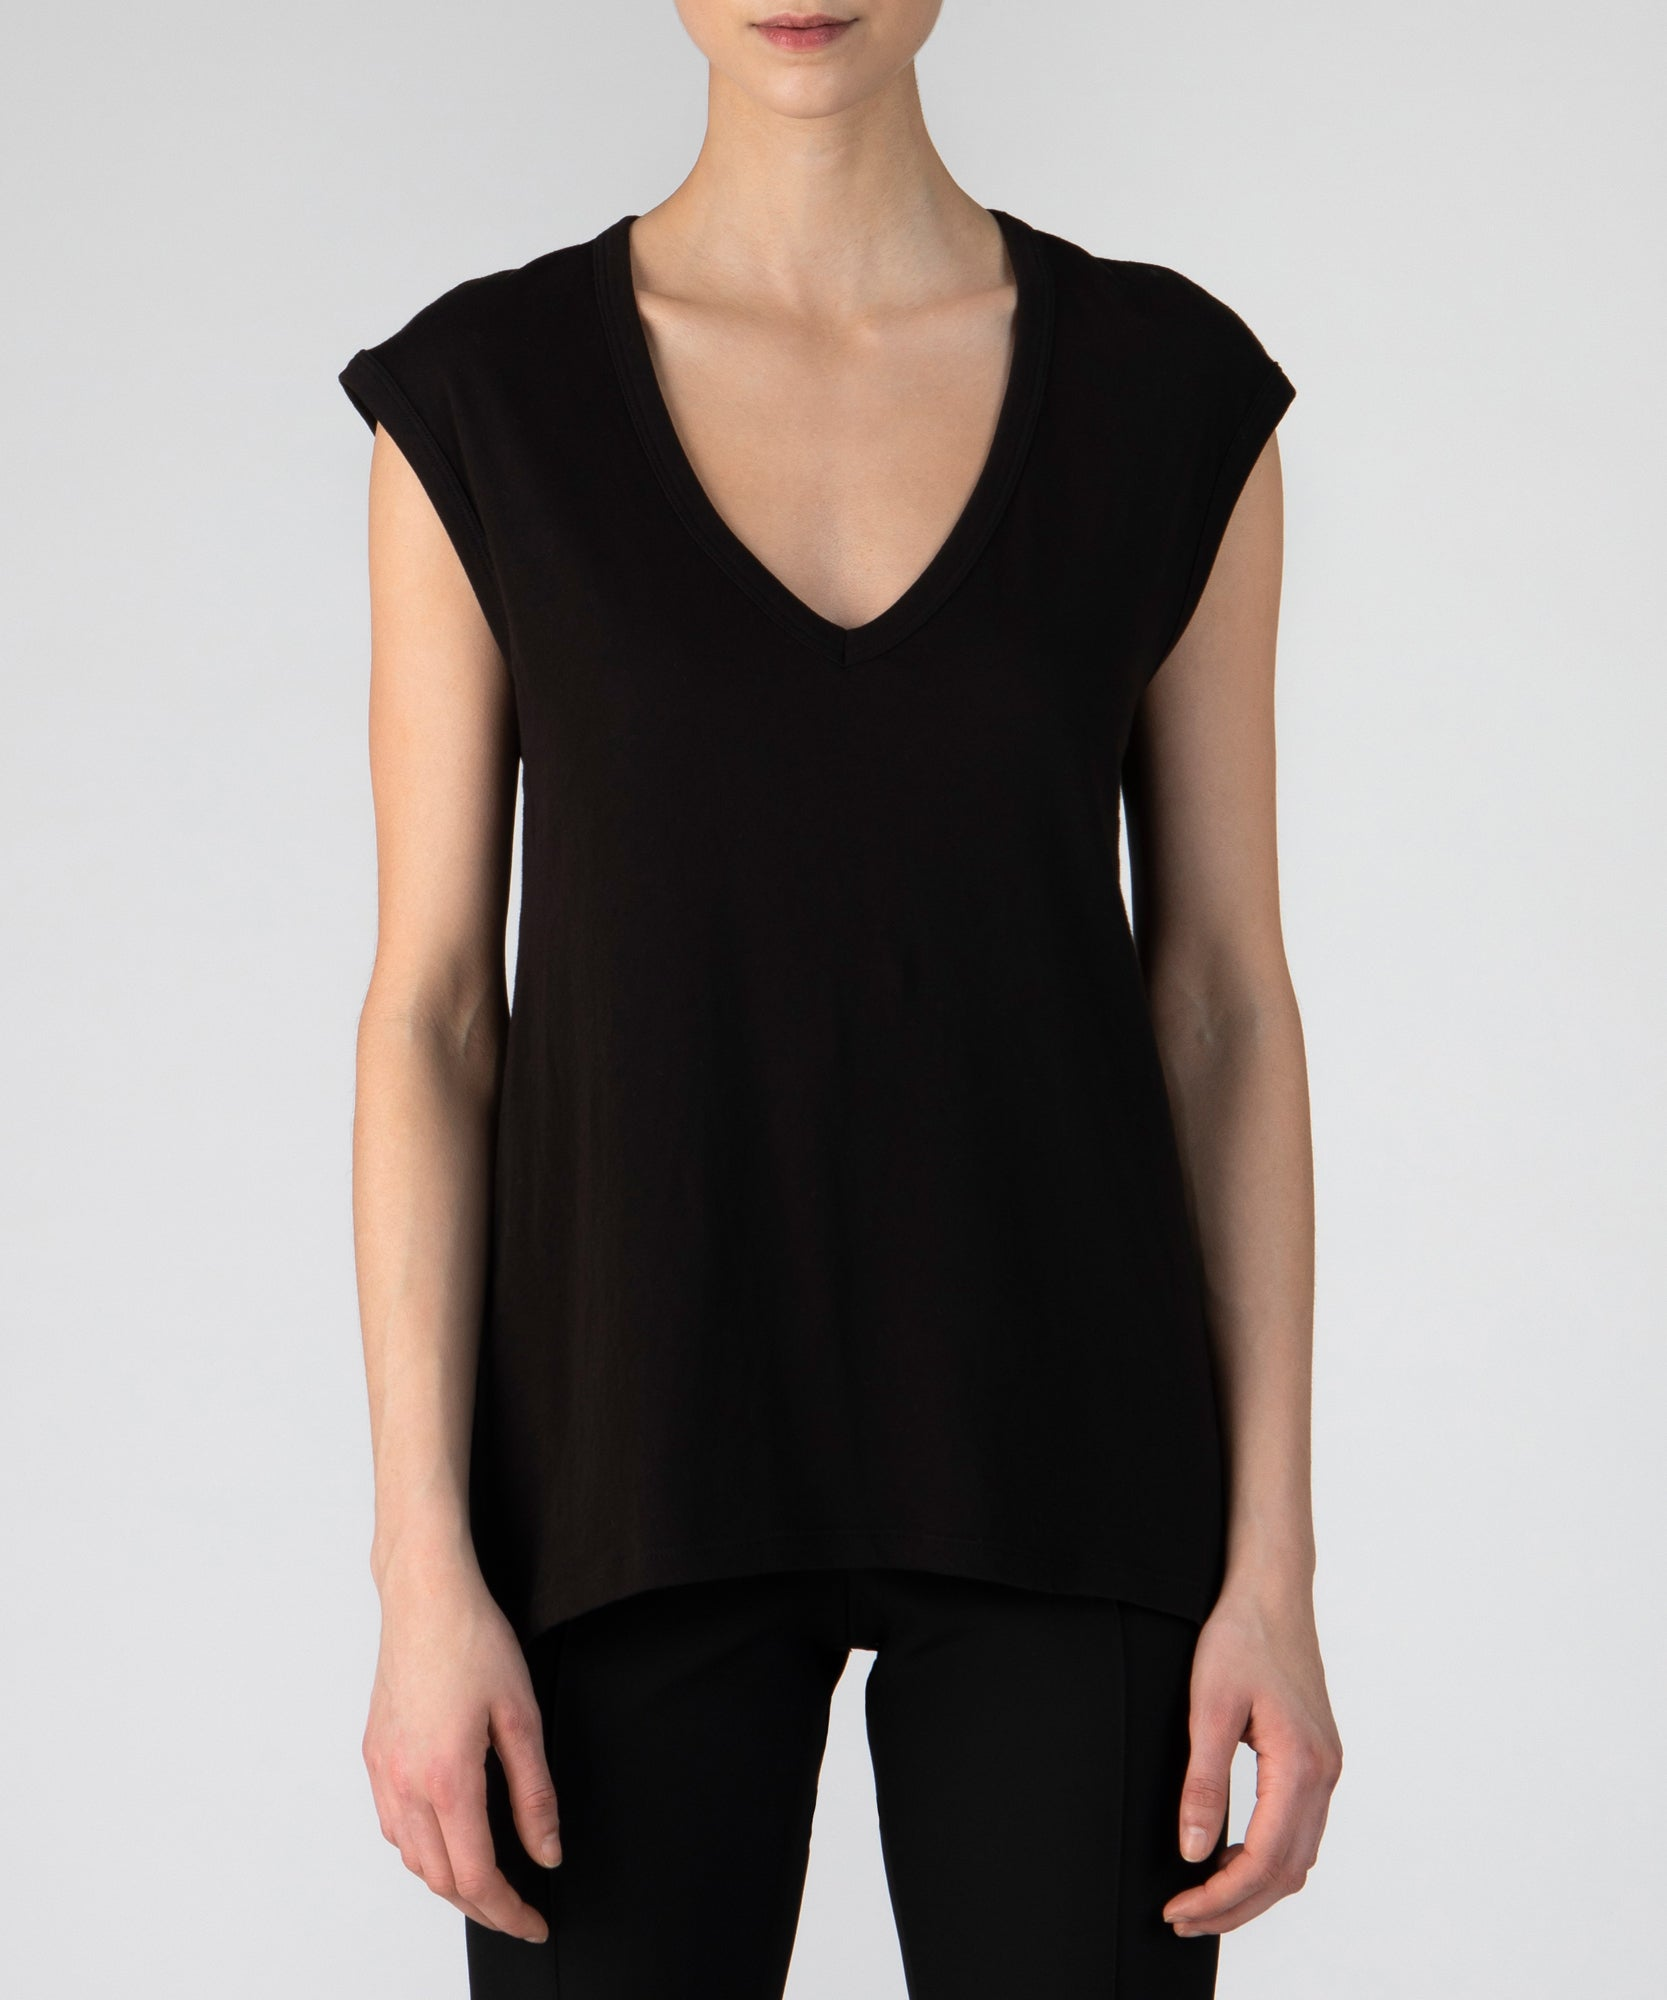 Black Vintage Jersey Sleeveless Tee - Women's Luxe Top by ATM Anthony Thomas Melillo